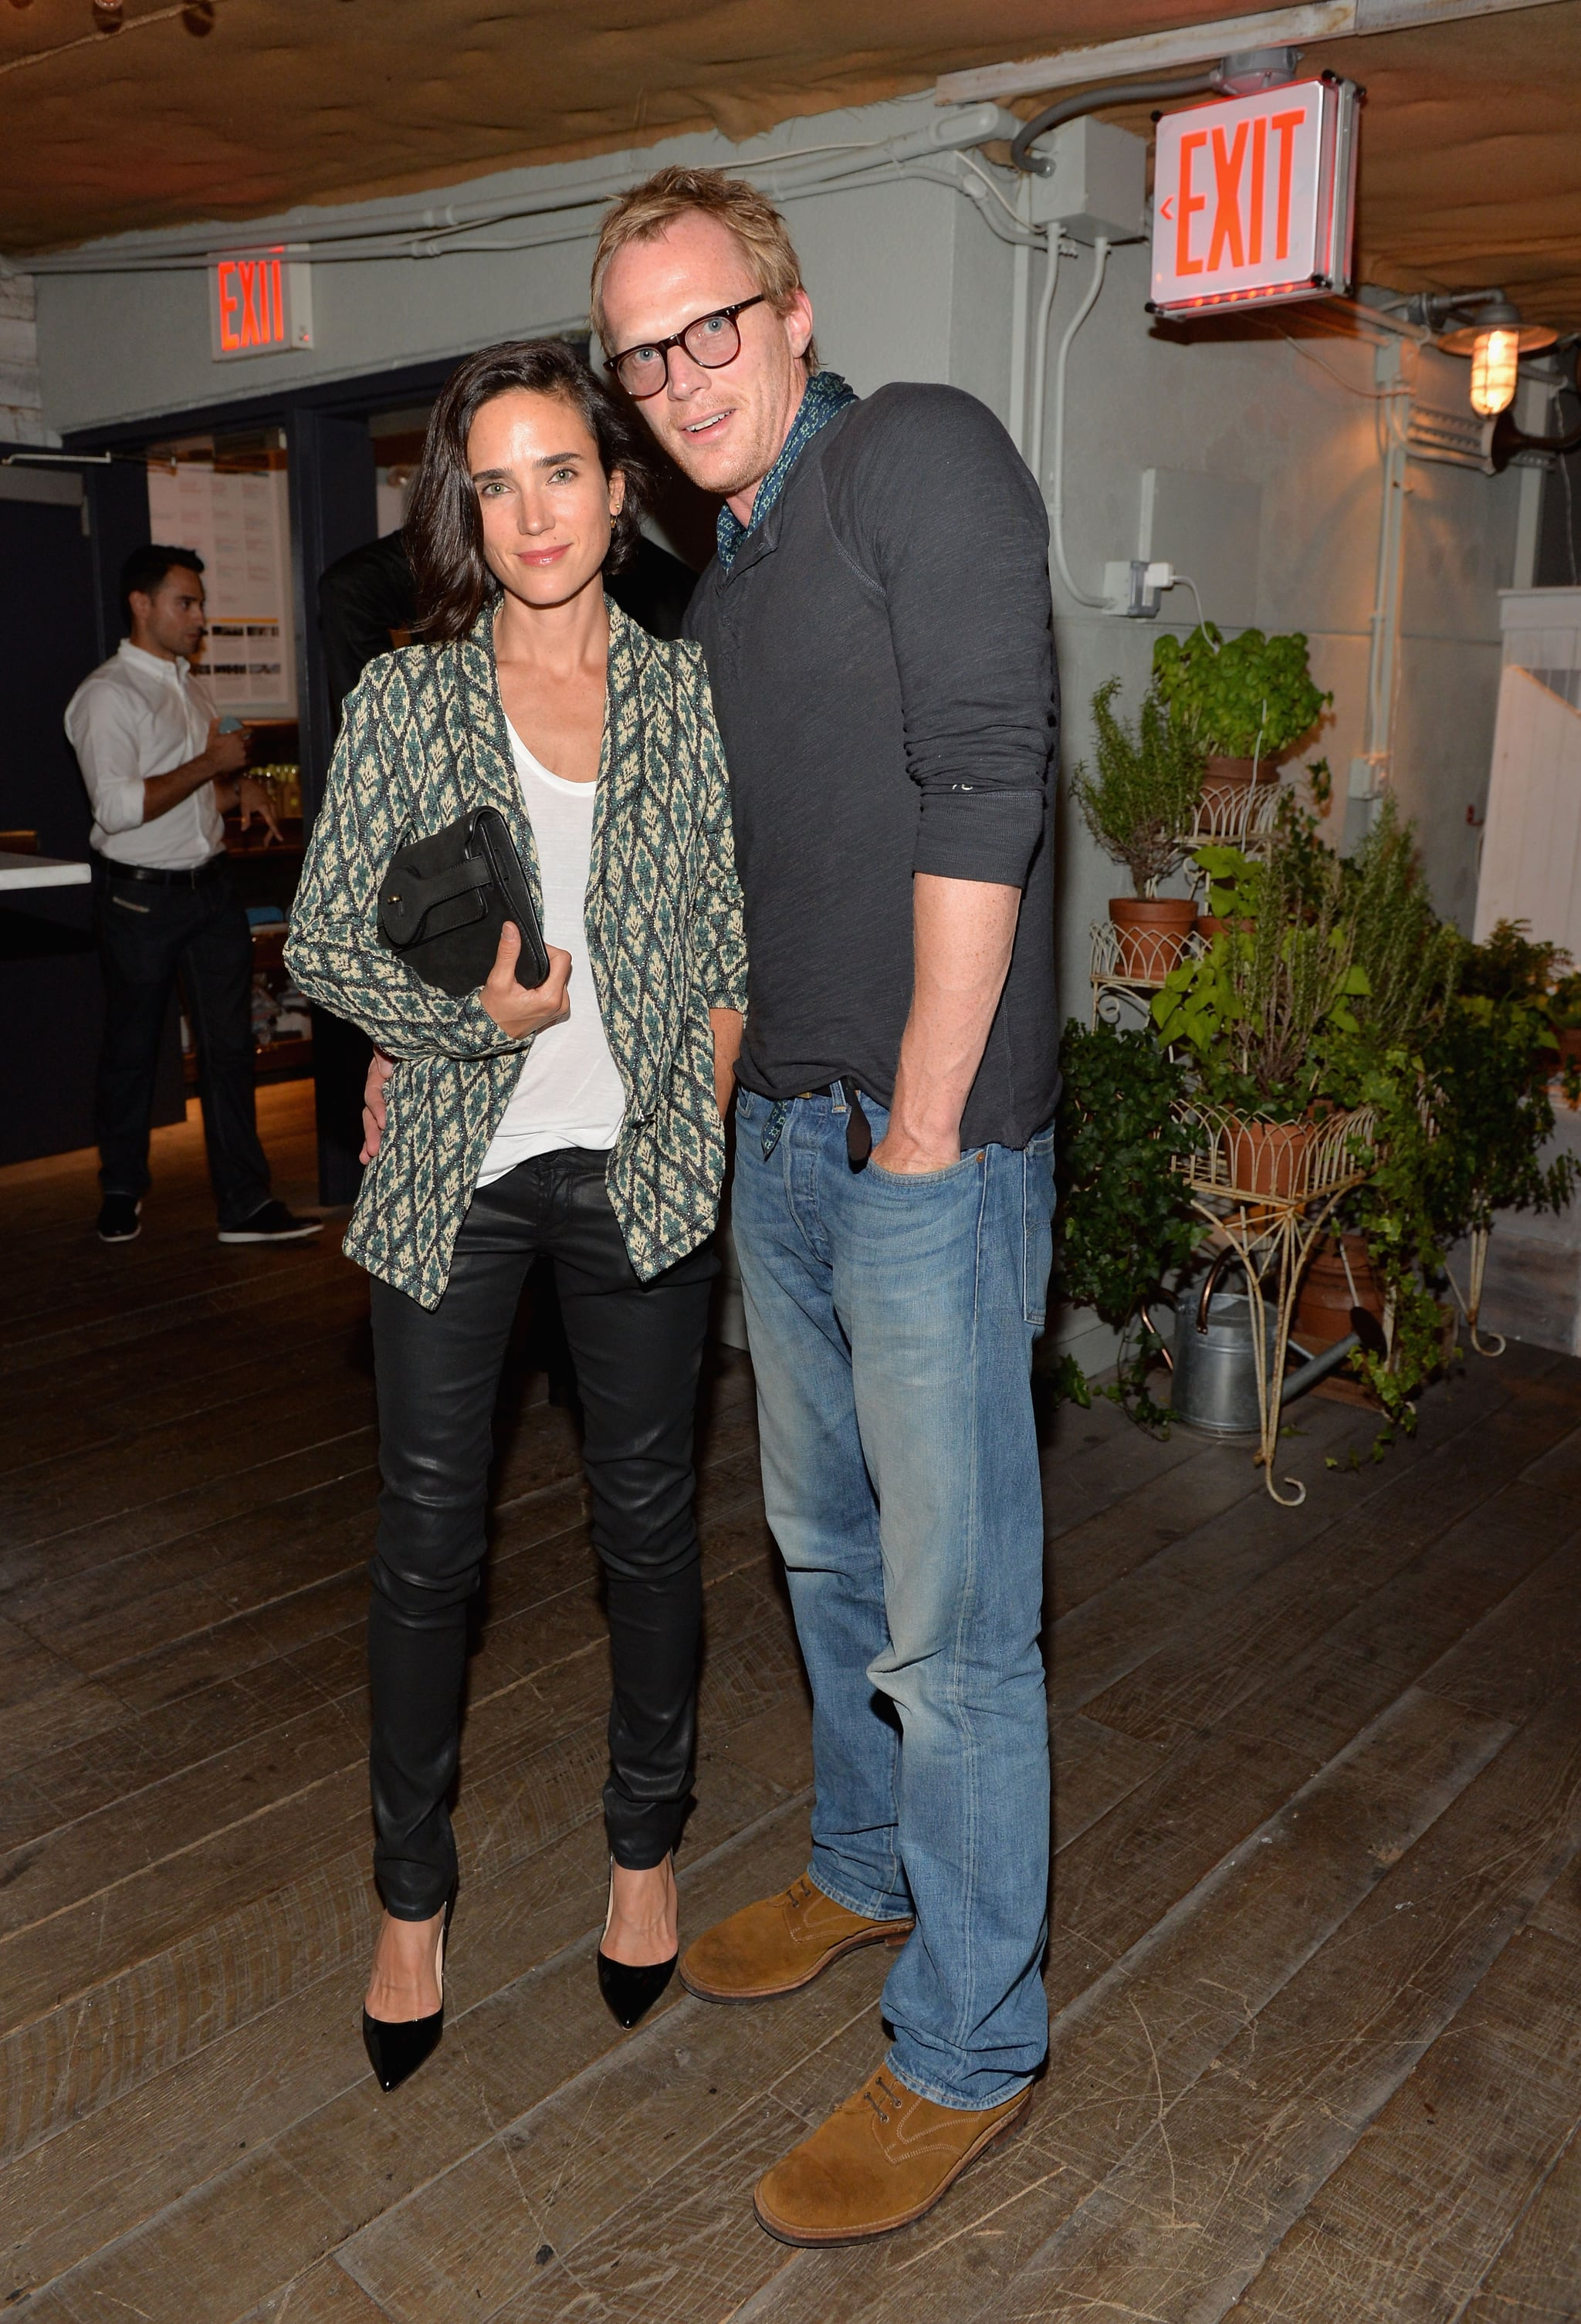 Jennifer Connelly and Paul Bettany at the Soho House 10th anniversary party in New York City.